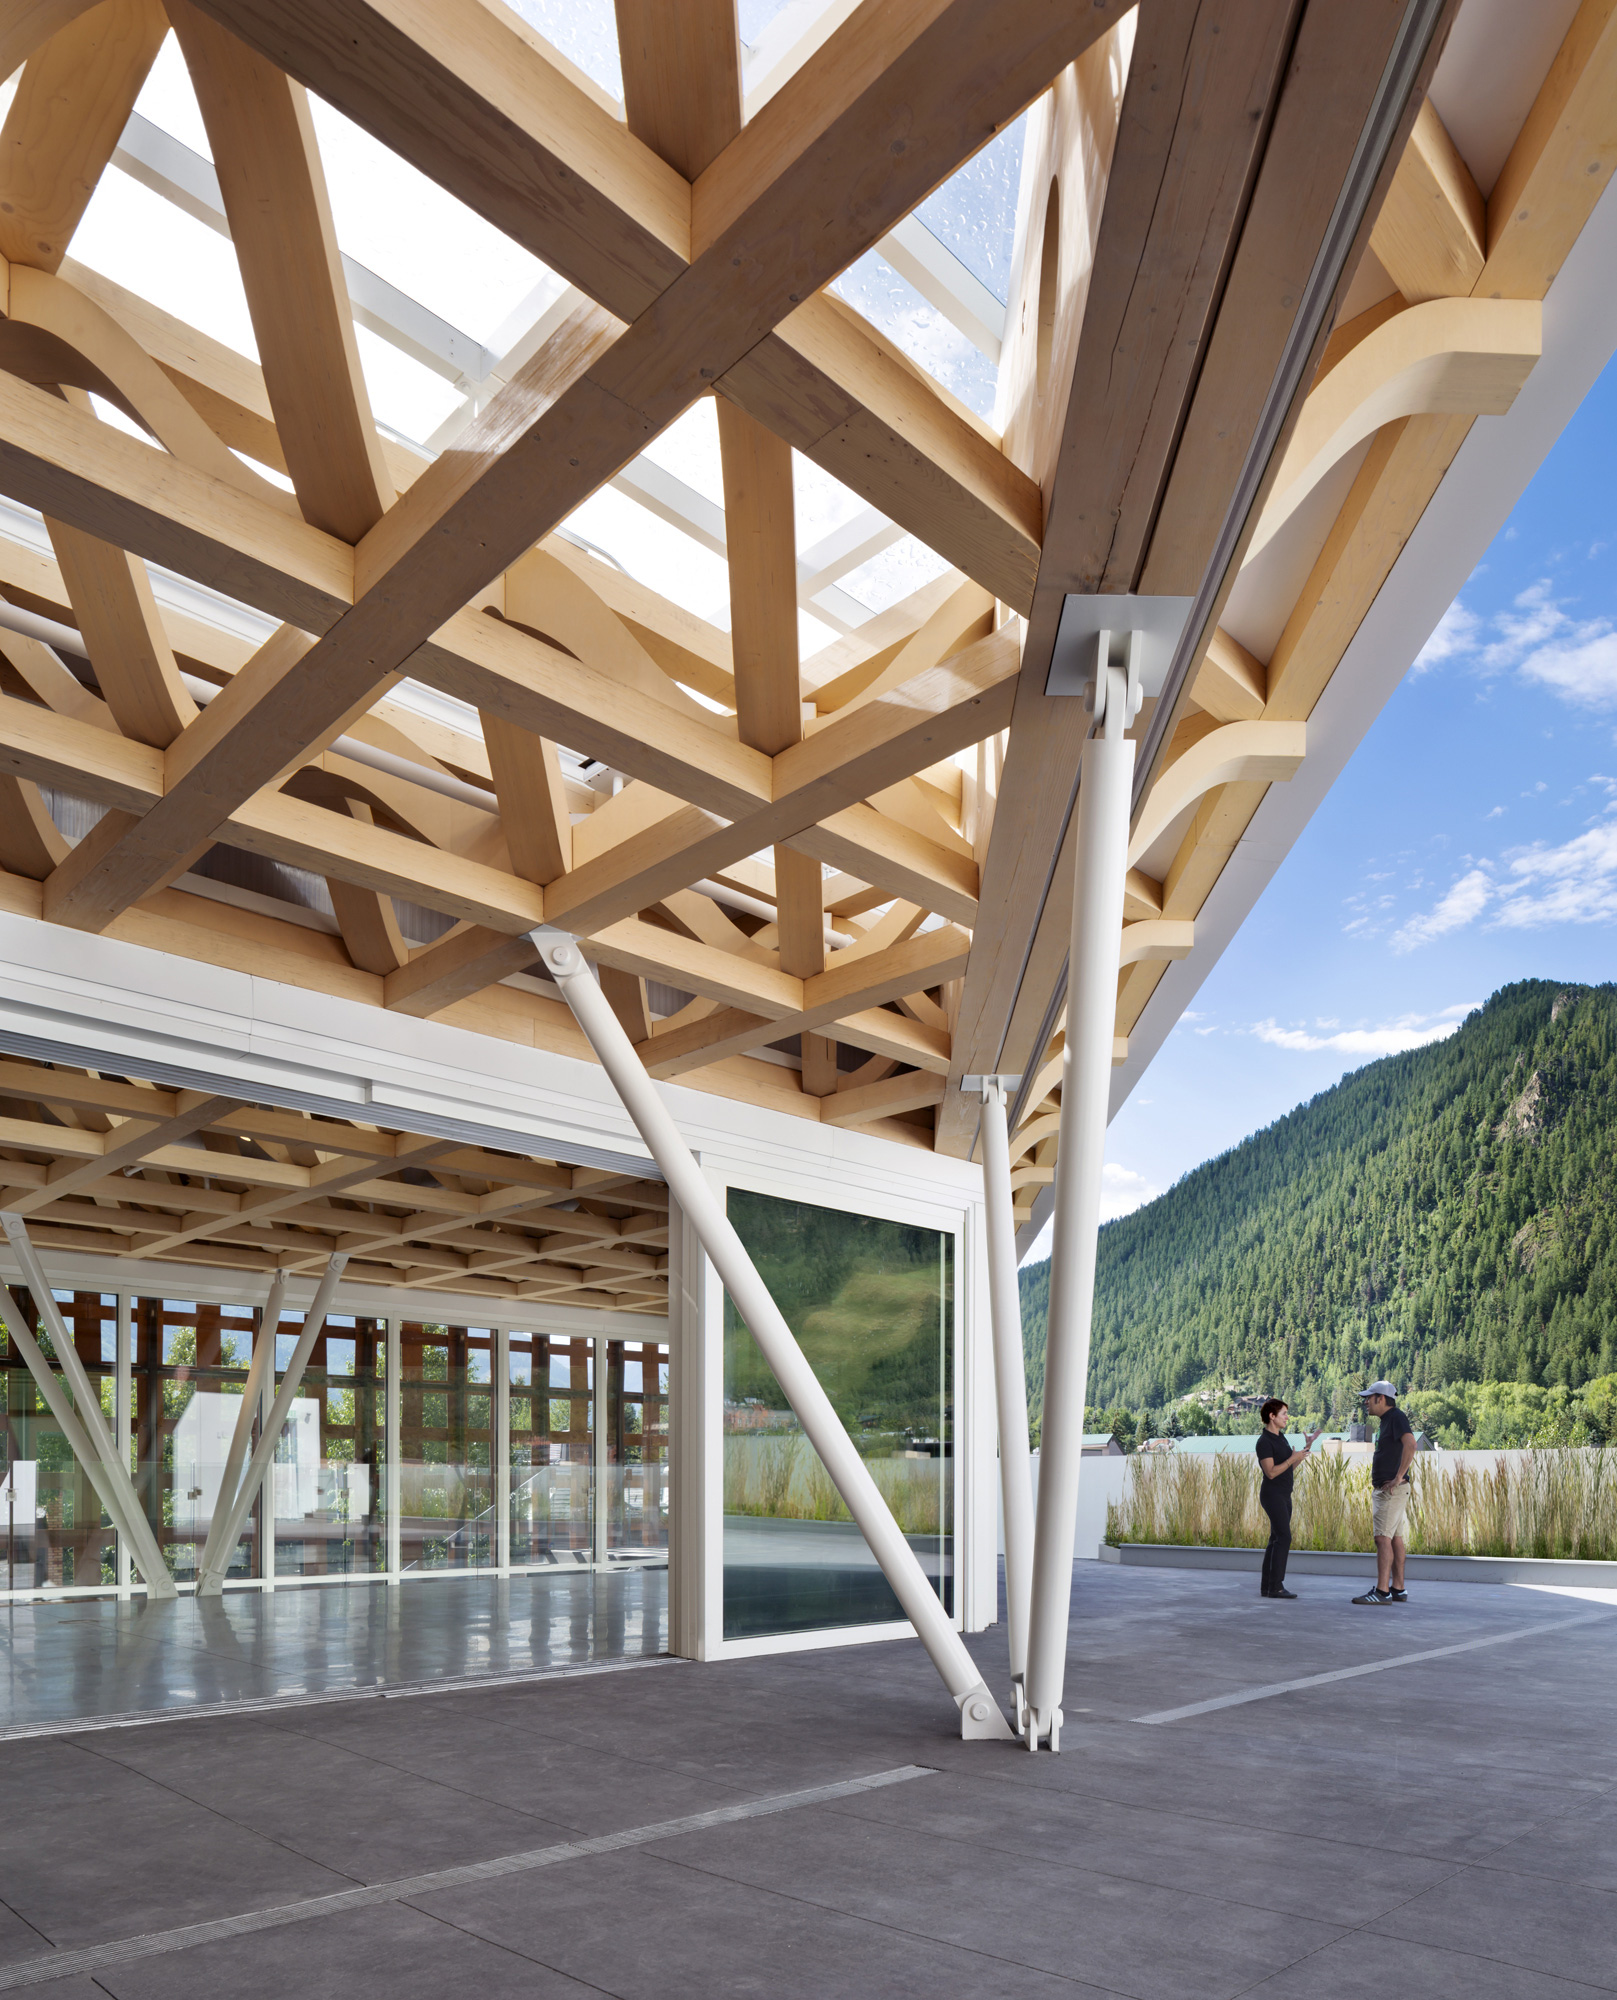 Aspen Art Museum / Shigeru Ban Architects (19)